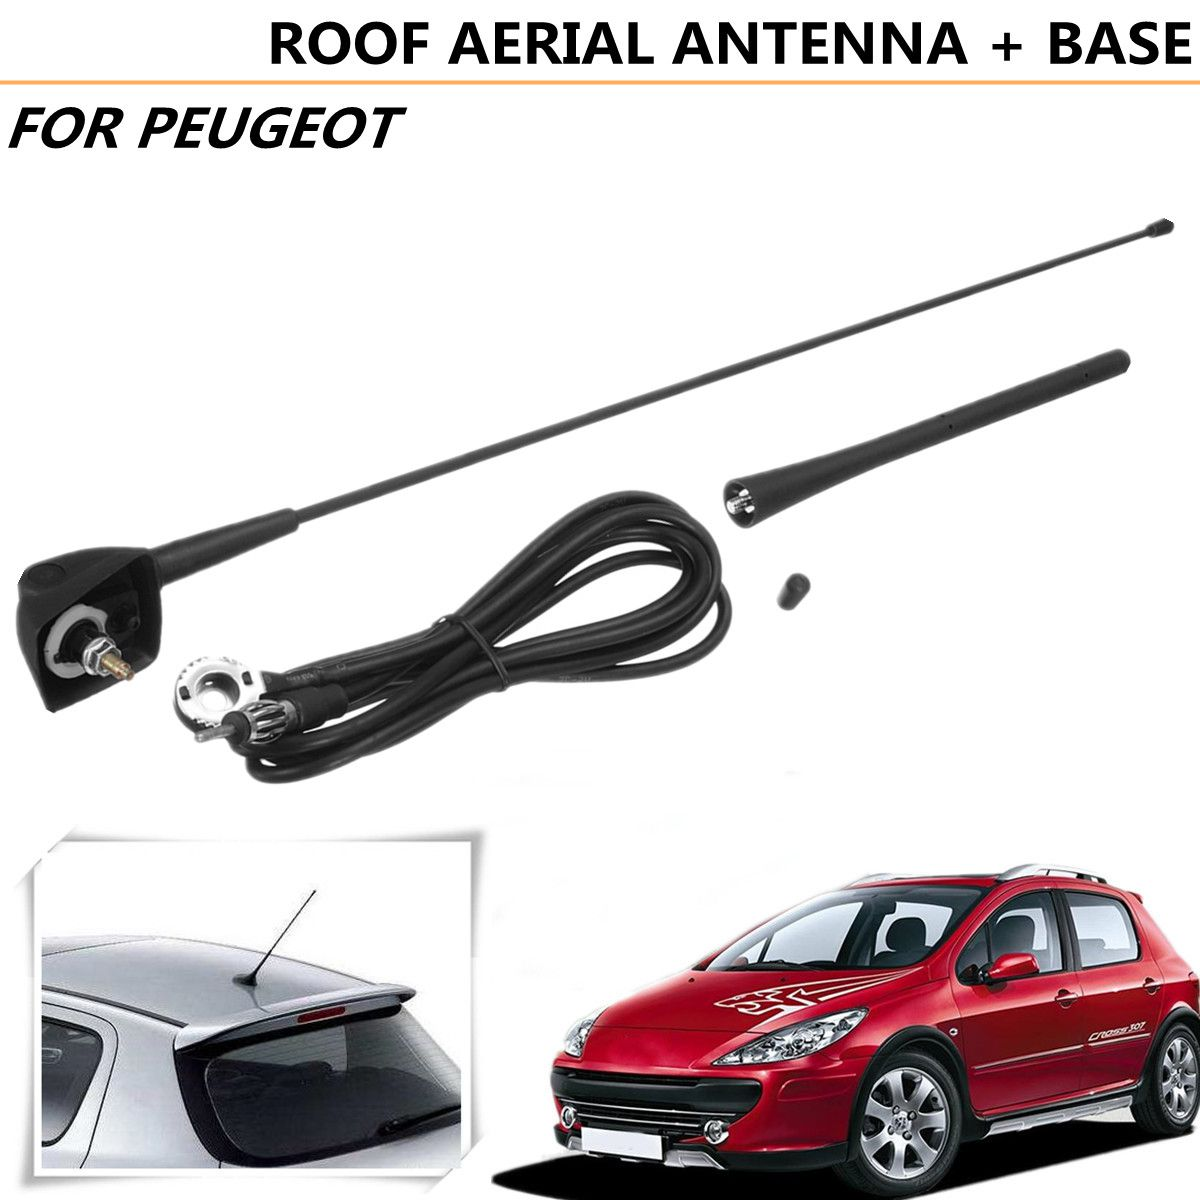 Square Base Roof Antenna and Mount For Peugeot 106 205 206 306 307 309 406 806